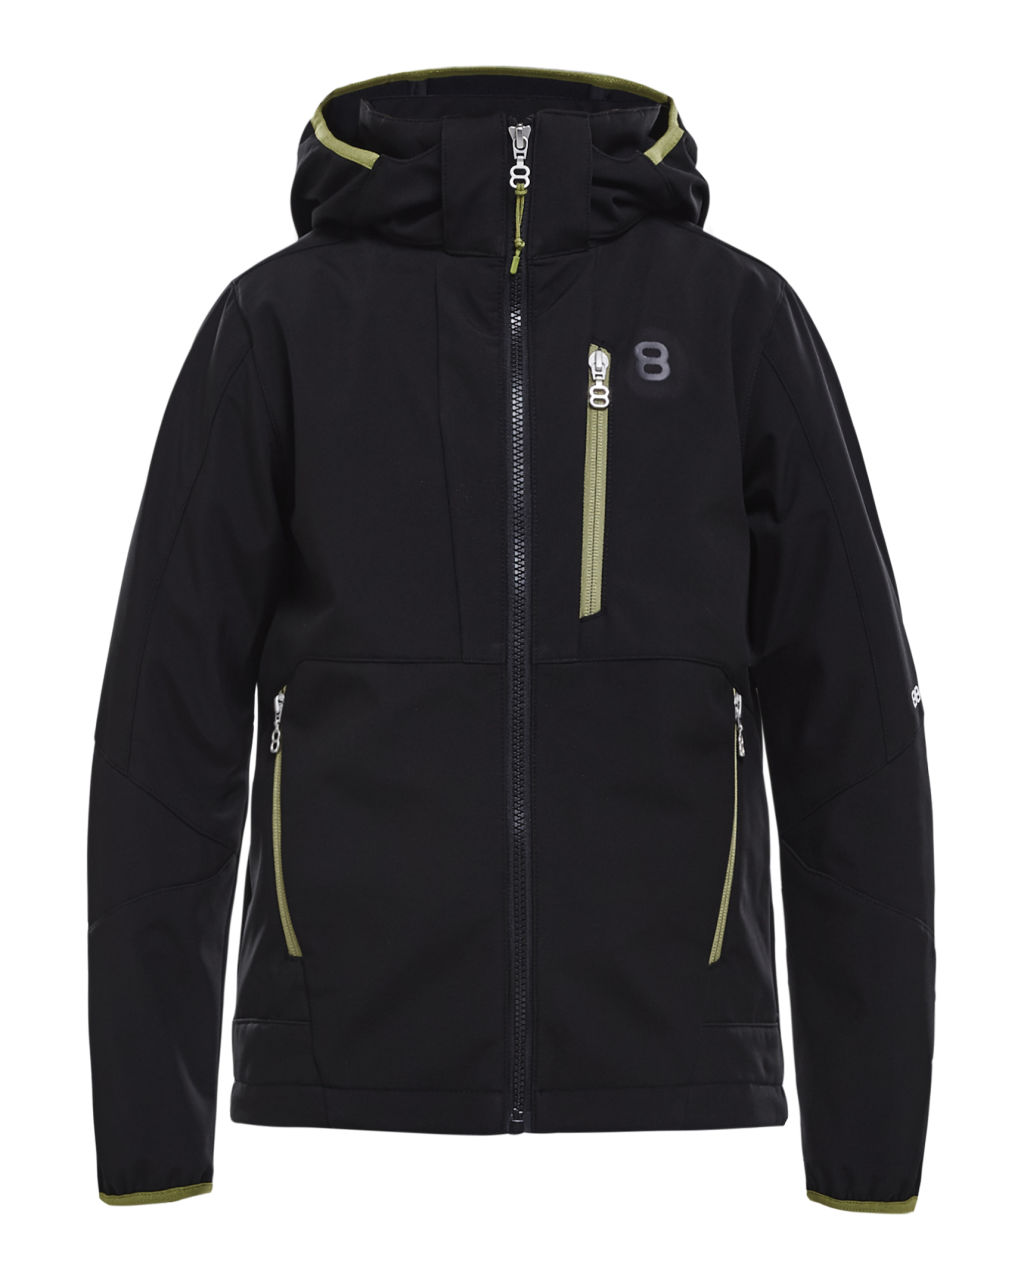 8848 Altitude Will Jacket Jr